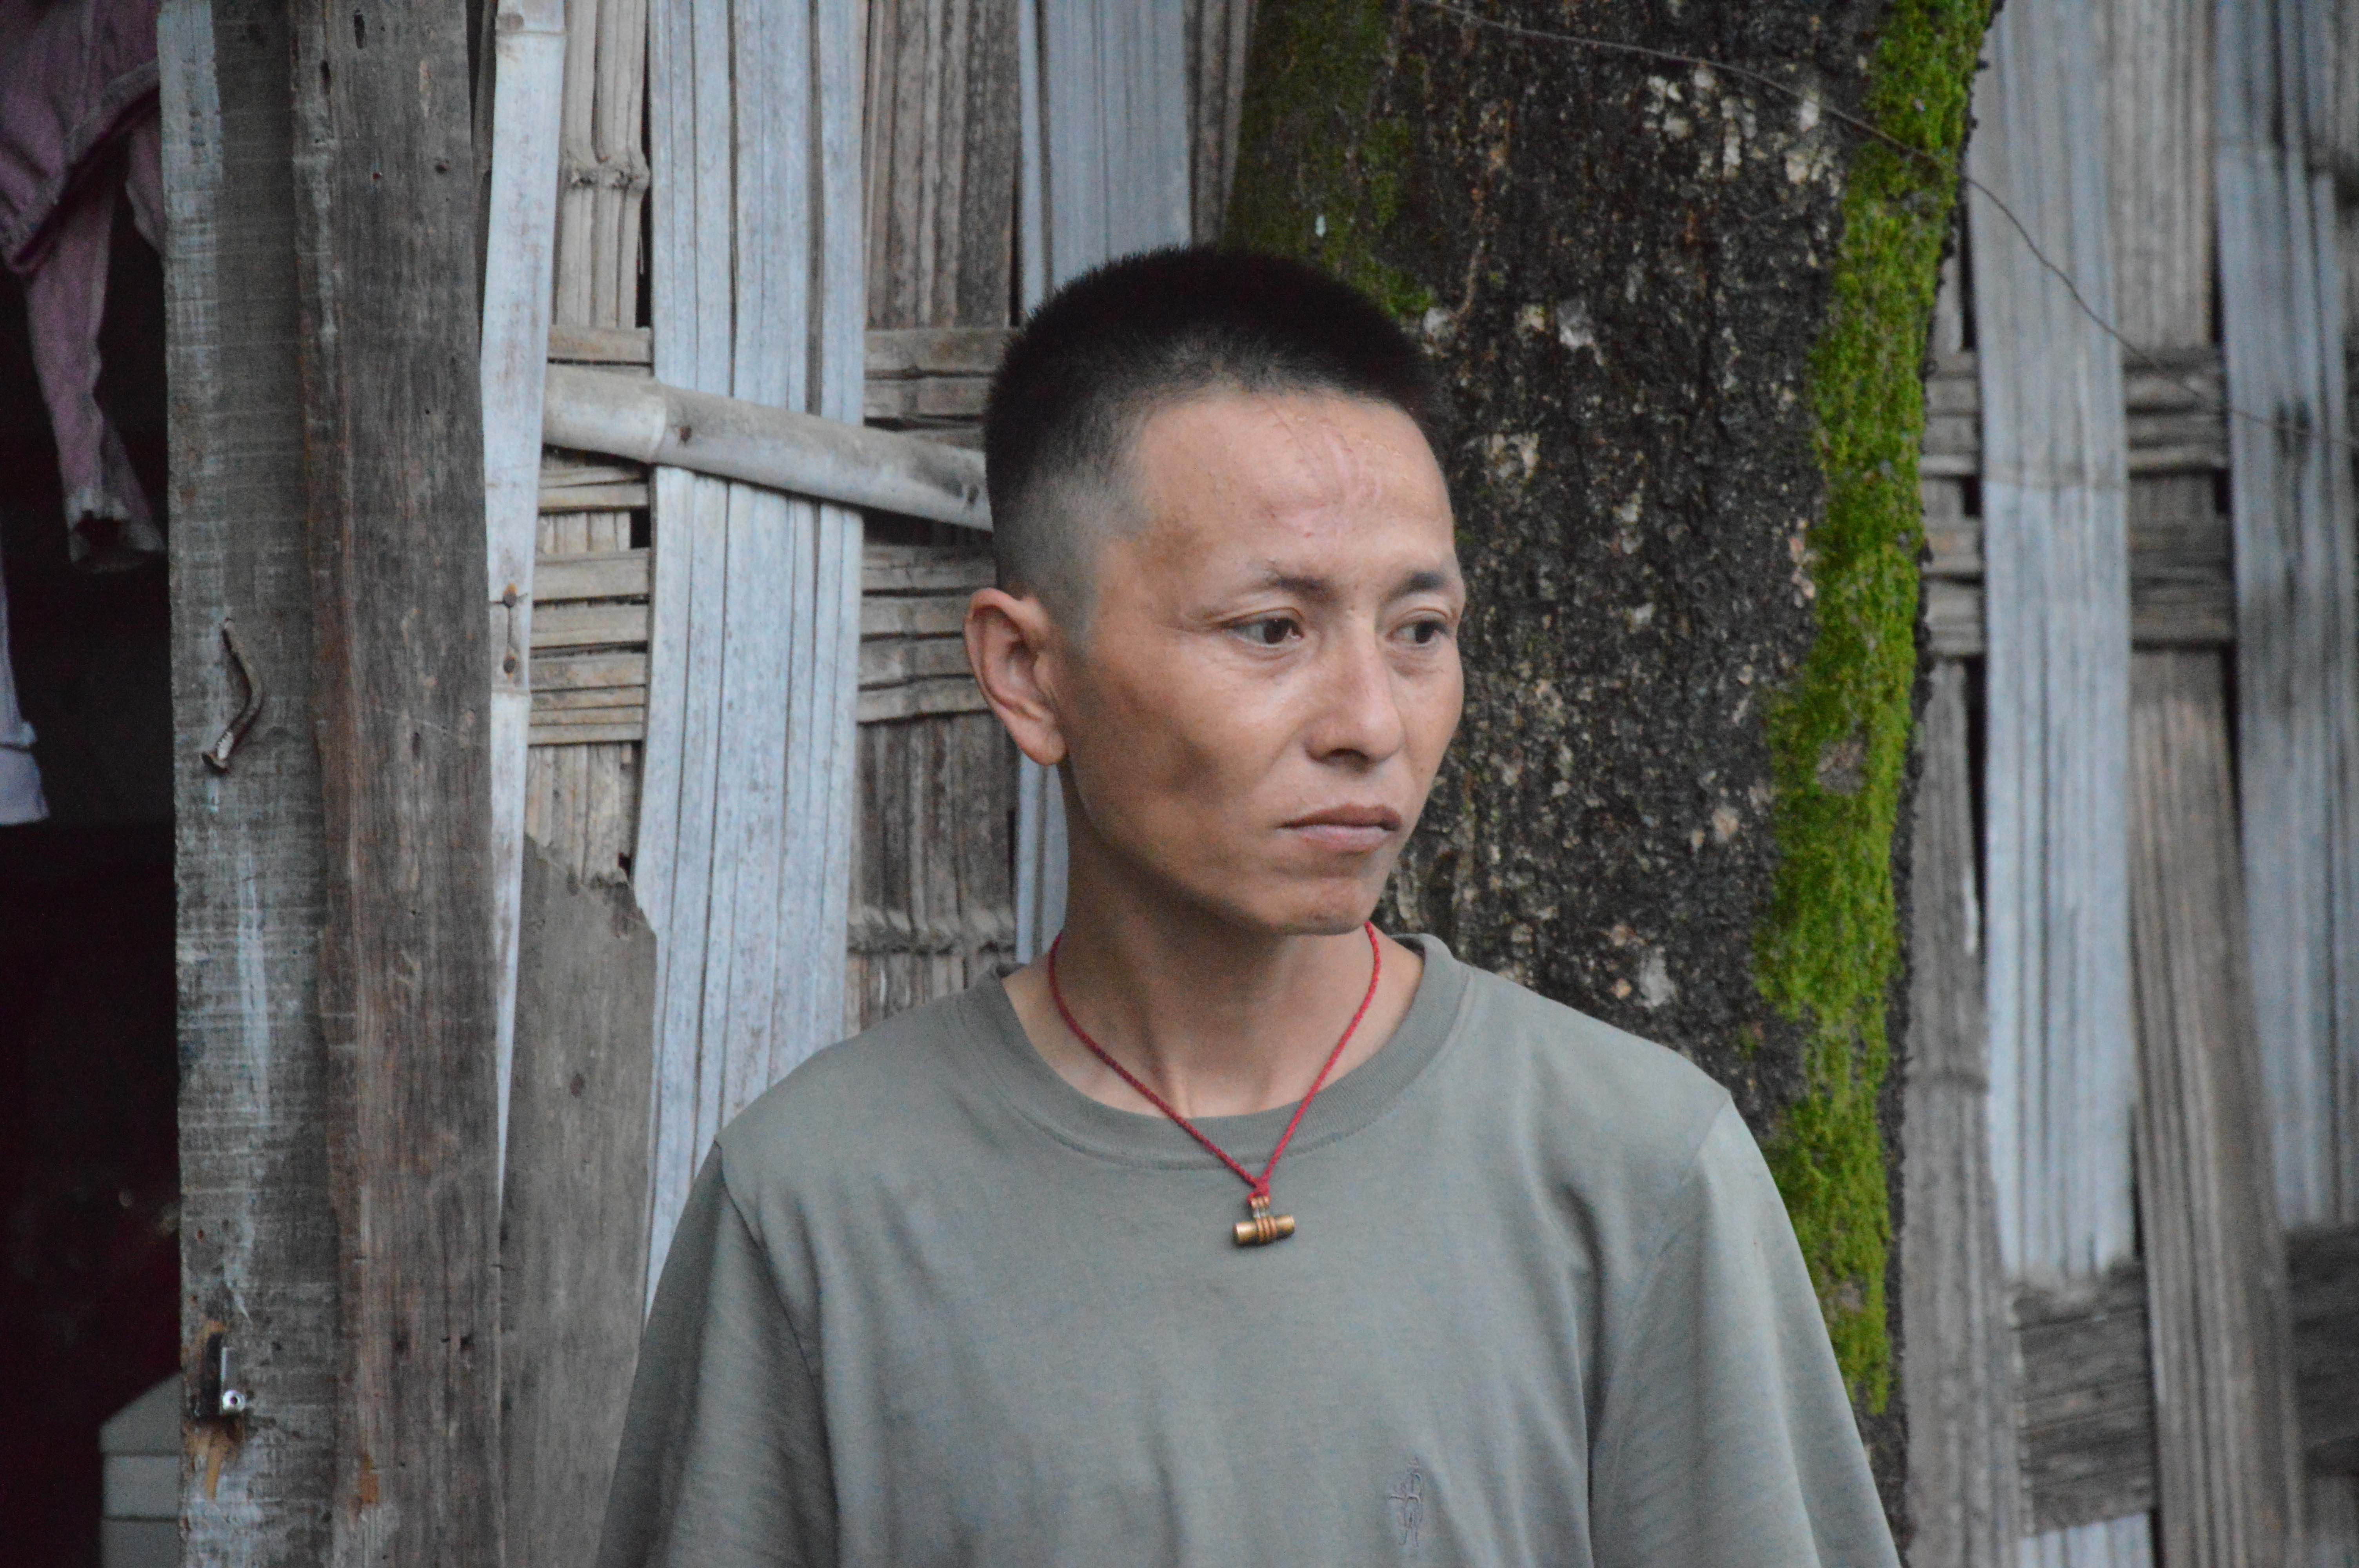 Herojit's confession was the first time a member of the security forces in Manipur admitted to routinely staging executions. Credit: Grace Jajo